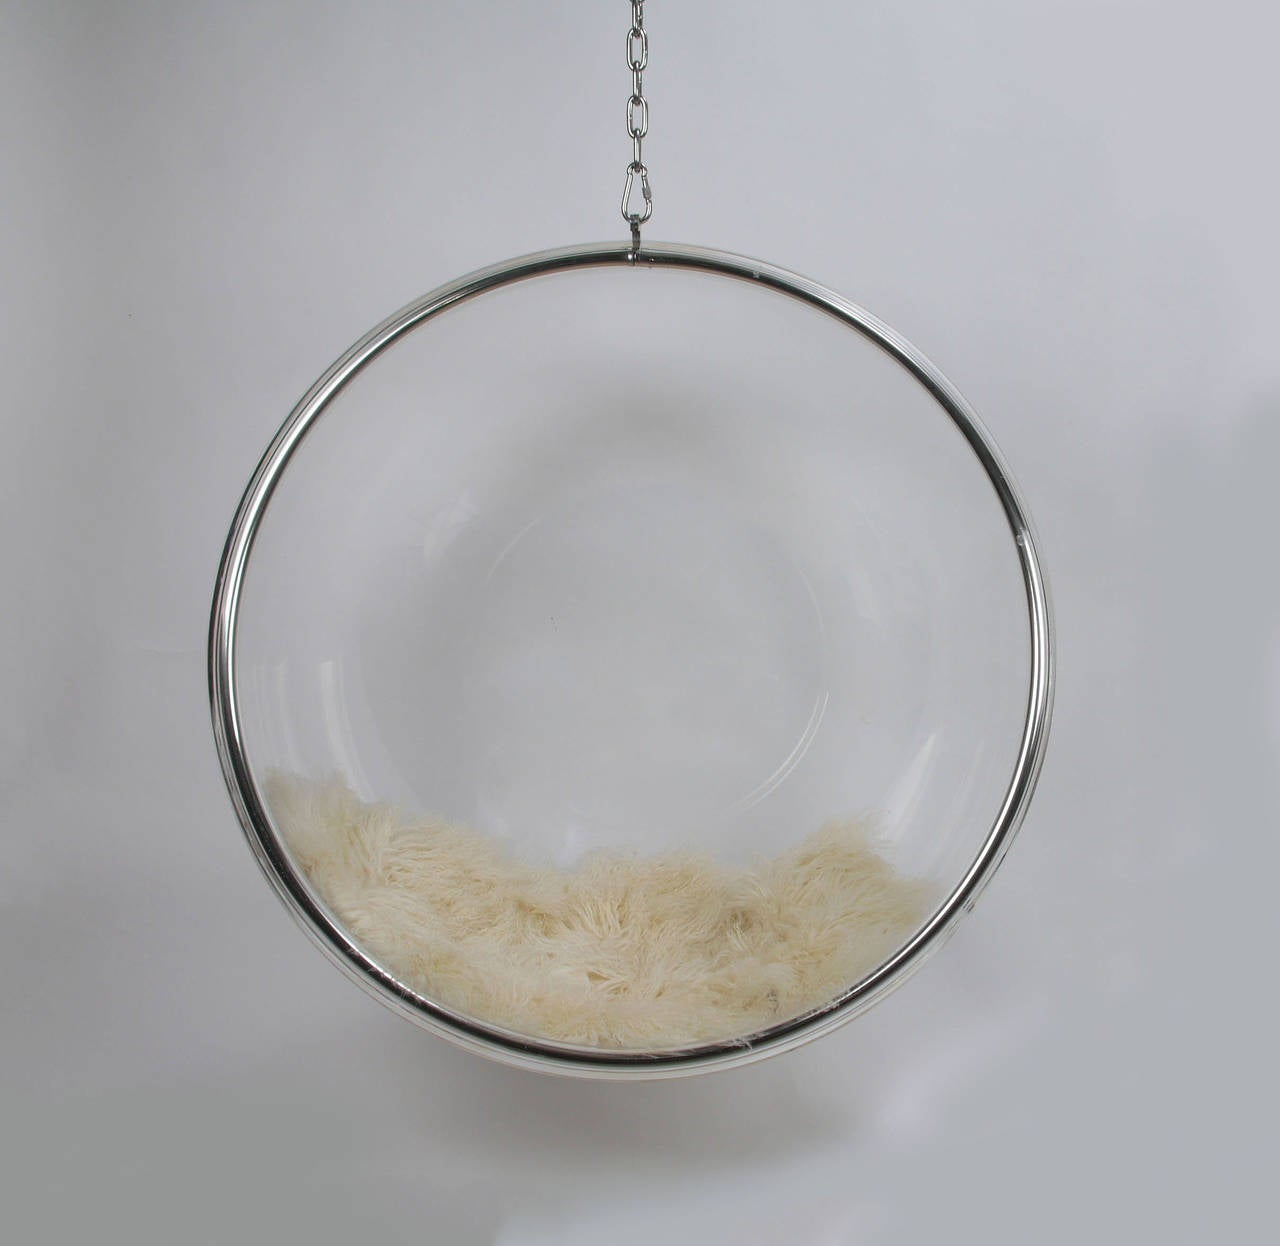 egg chair pod bedroom cozy eero aarnio by adelta hanging lucite bubble for sale at 1stdibs